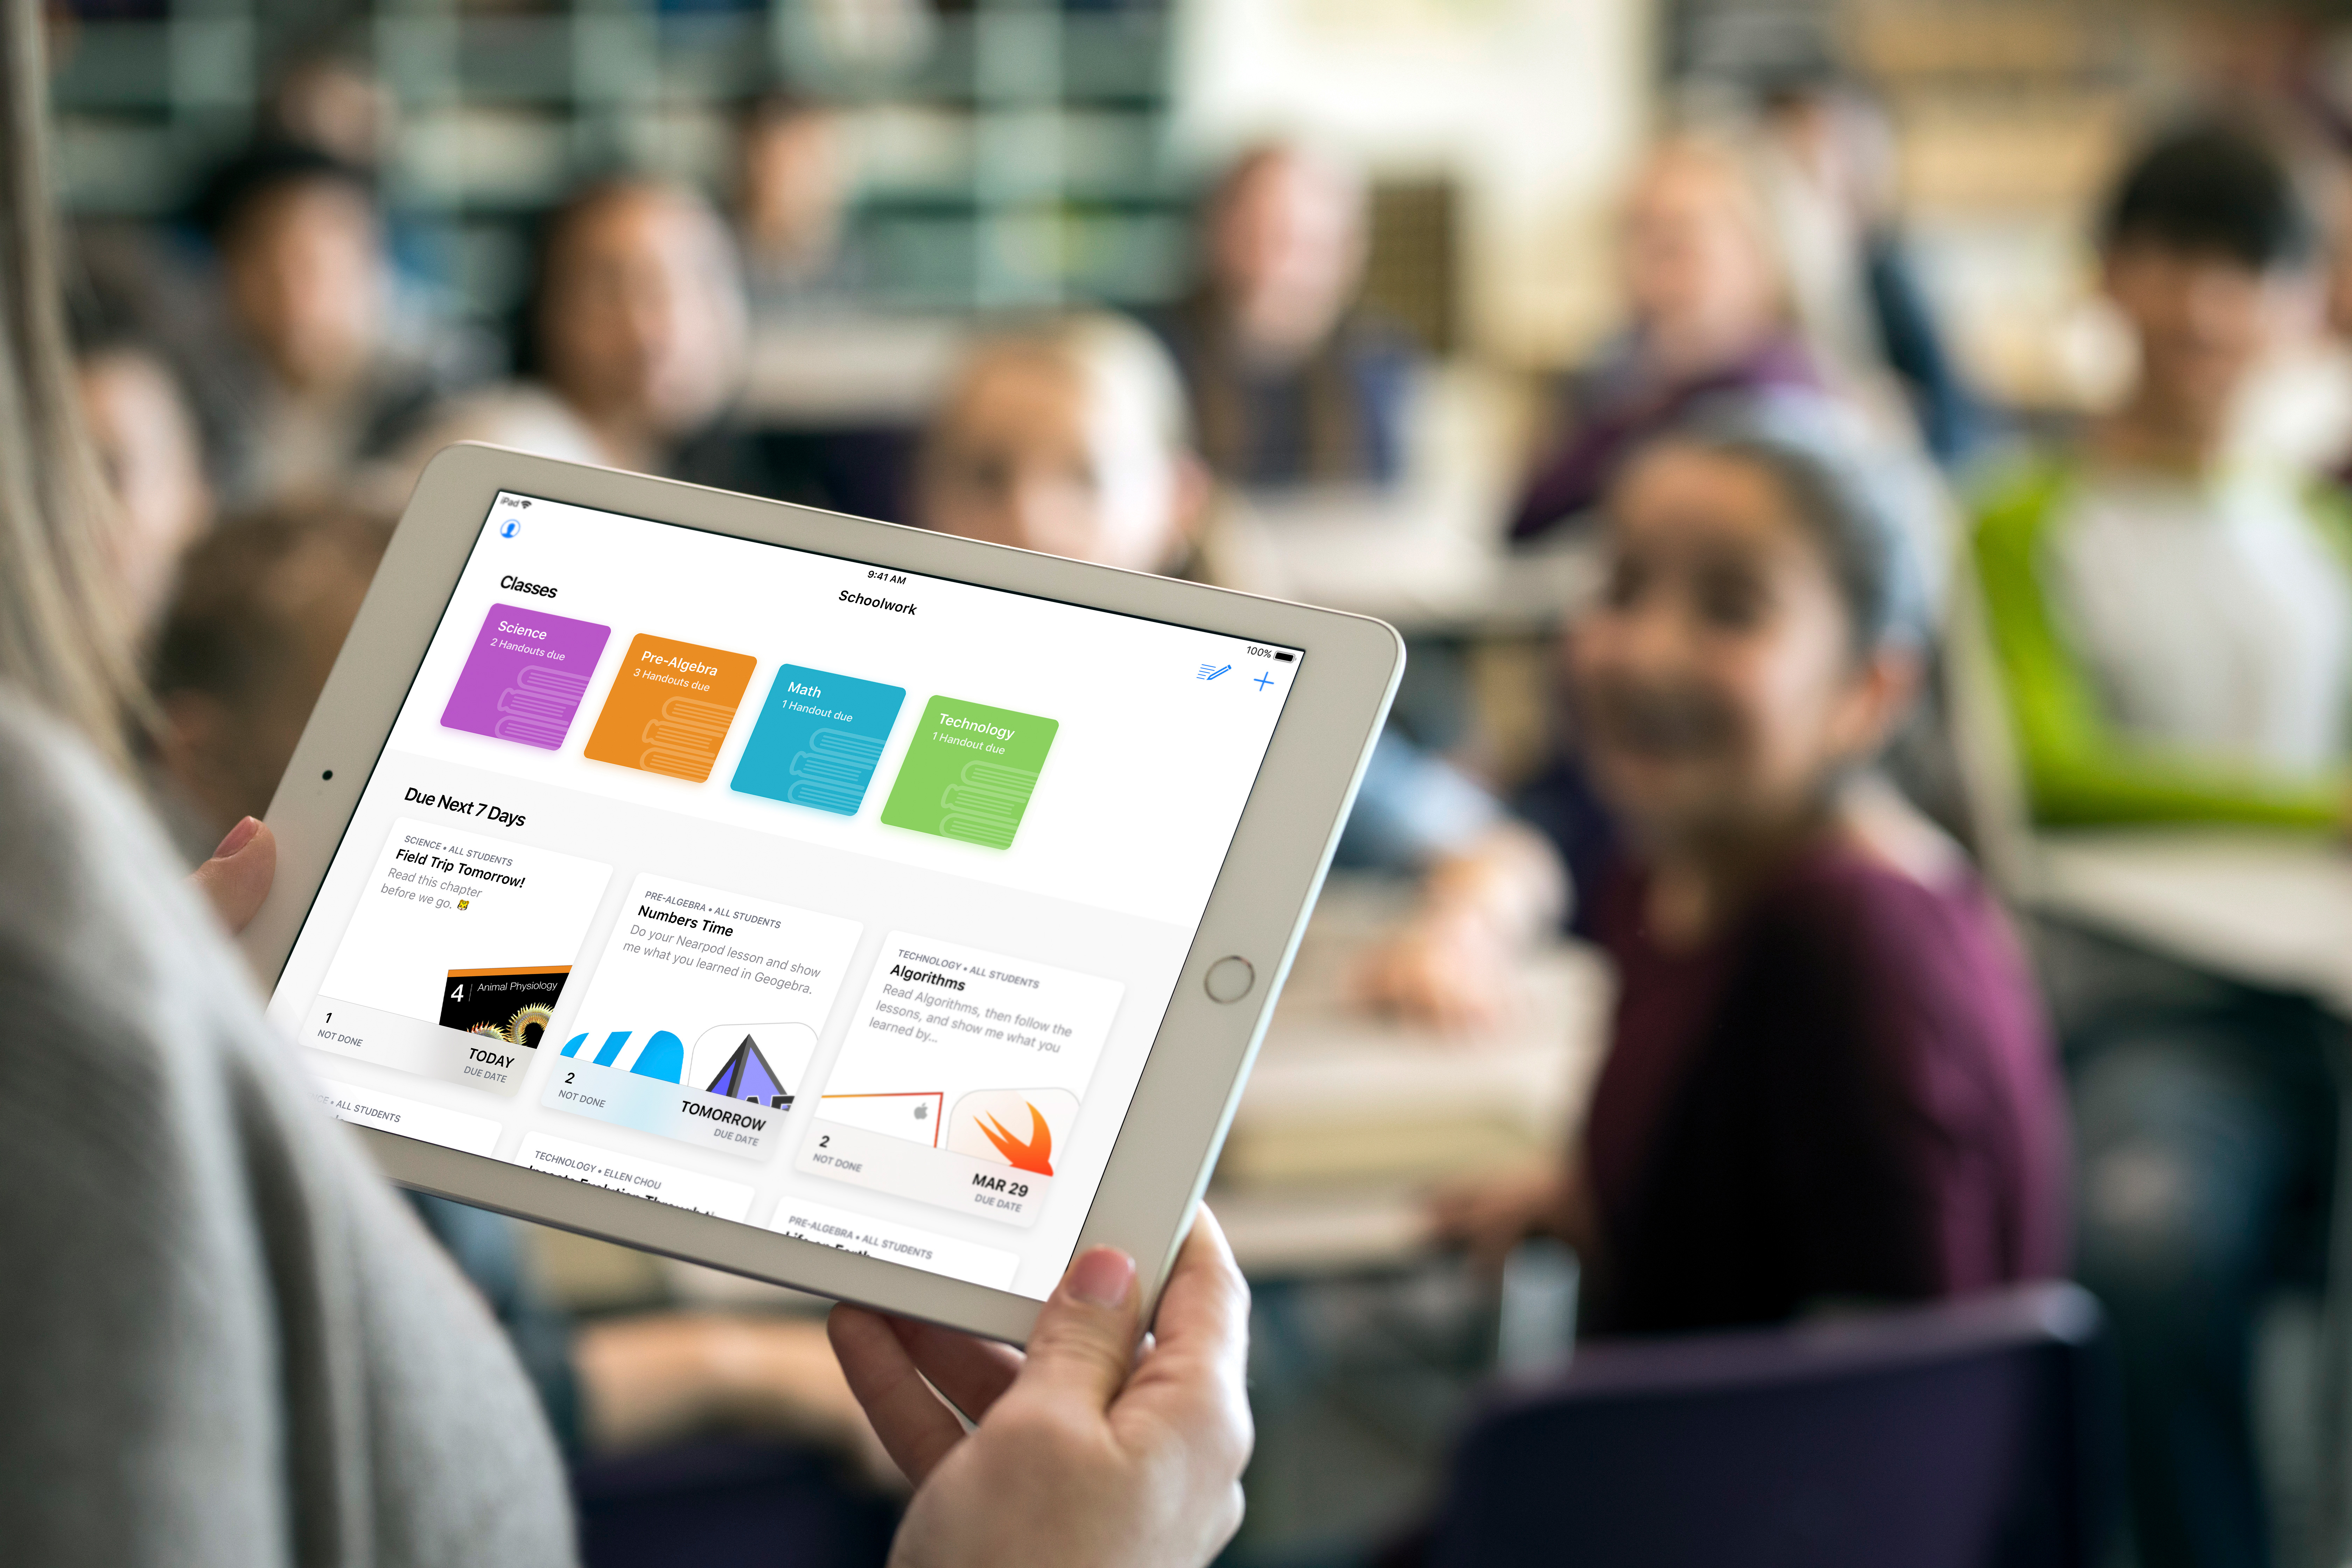 Apple's Education event focused on the classroom and how the iPad plays a role with students and teachers.